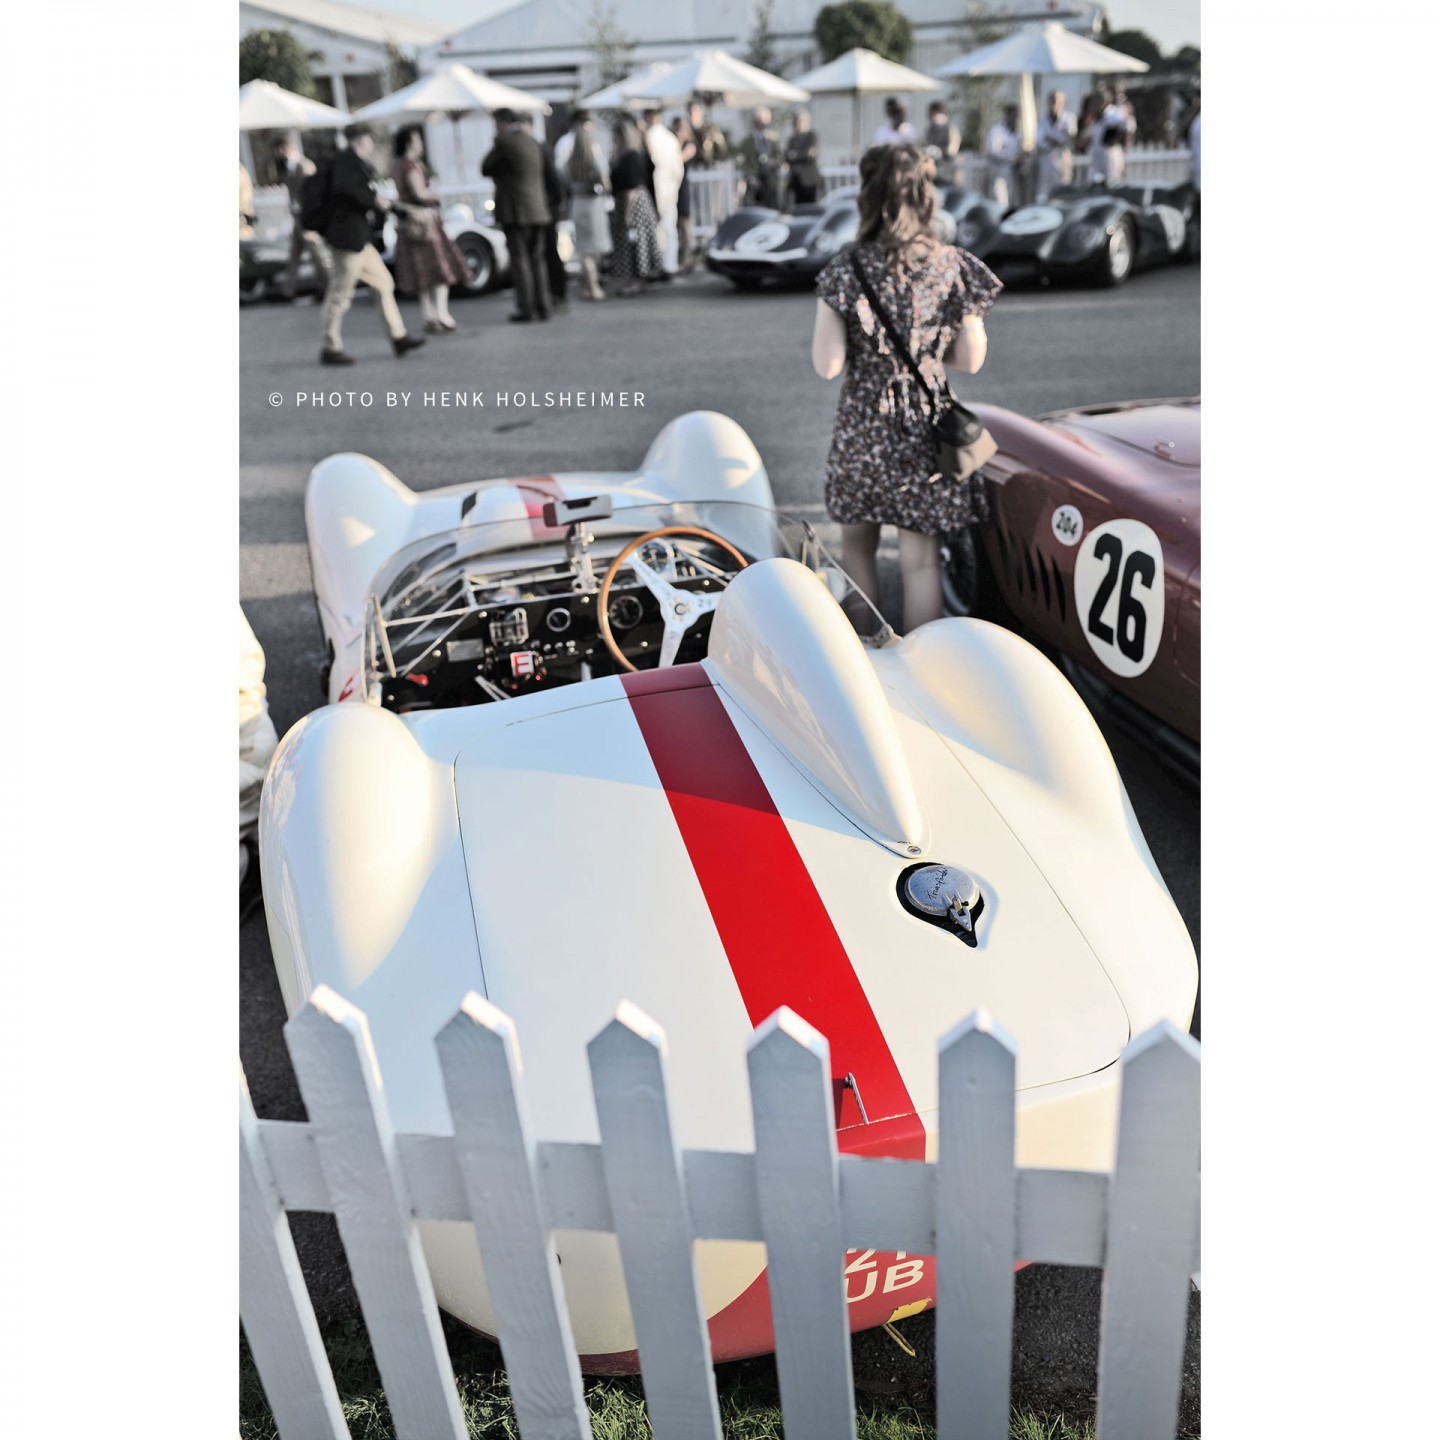 Maserati Birdcage, Goodwood Revival 2014